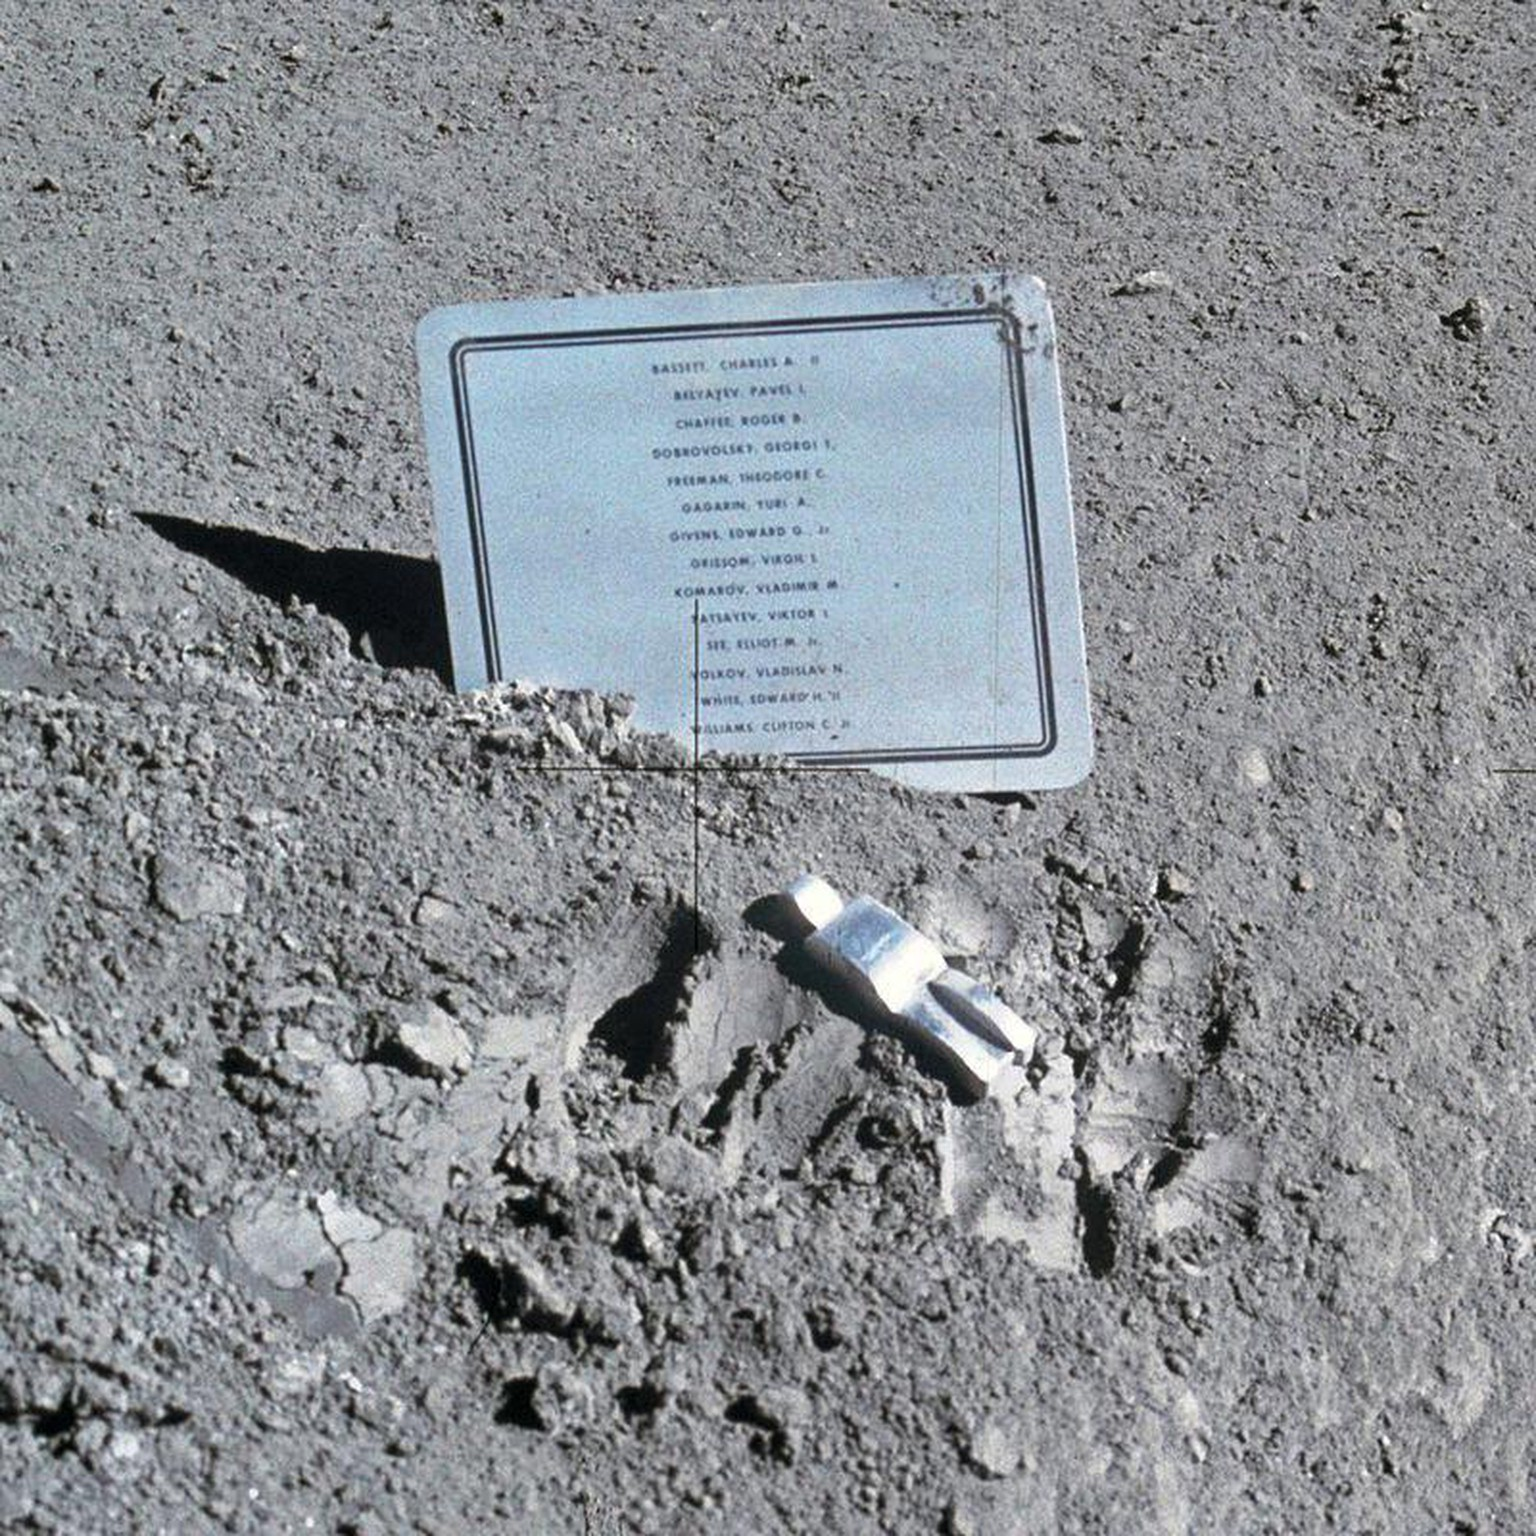 """Fallen Astronaut"" by Paul Van Hoeydonck and a tablet commemorating 14 fearless explorers who lost their lives in the quest for space exploration; Source: Pic"